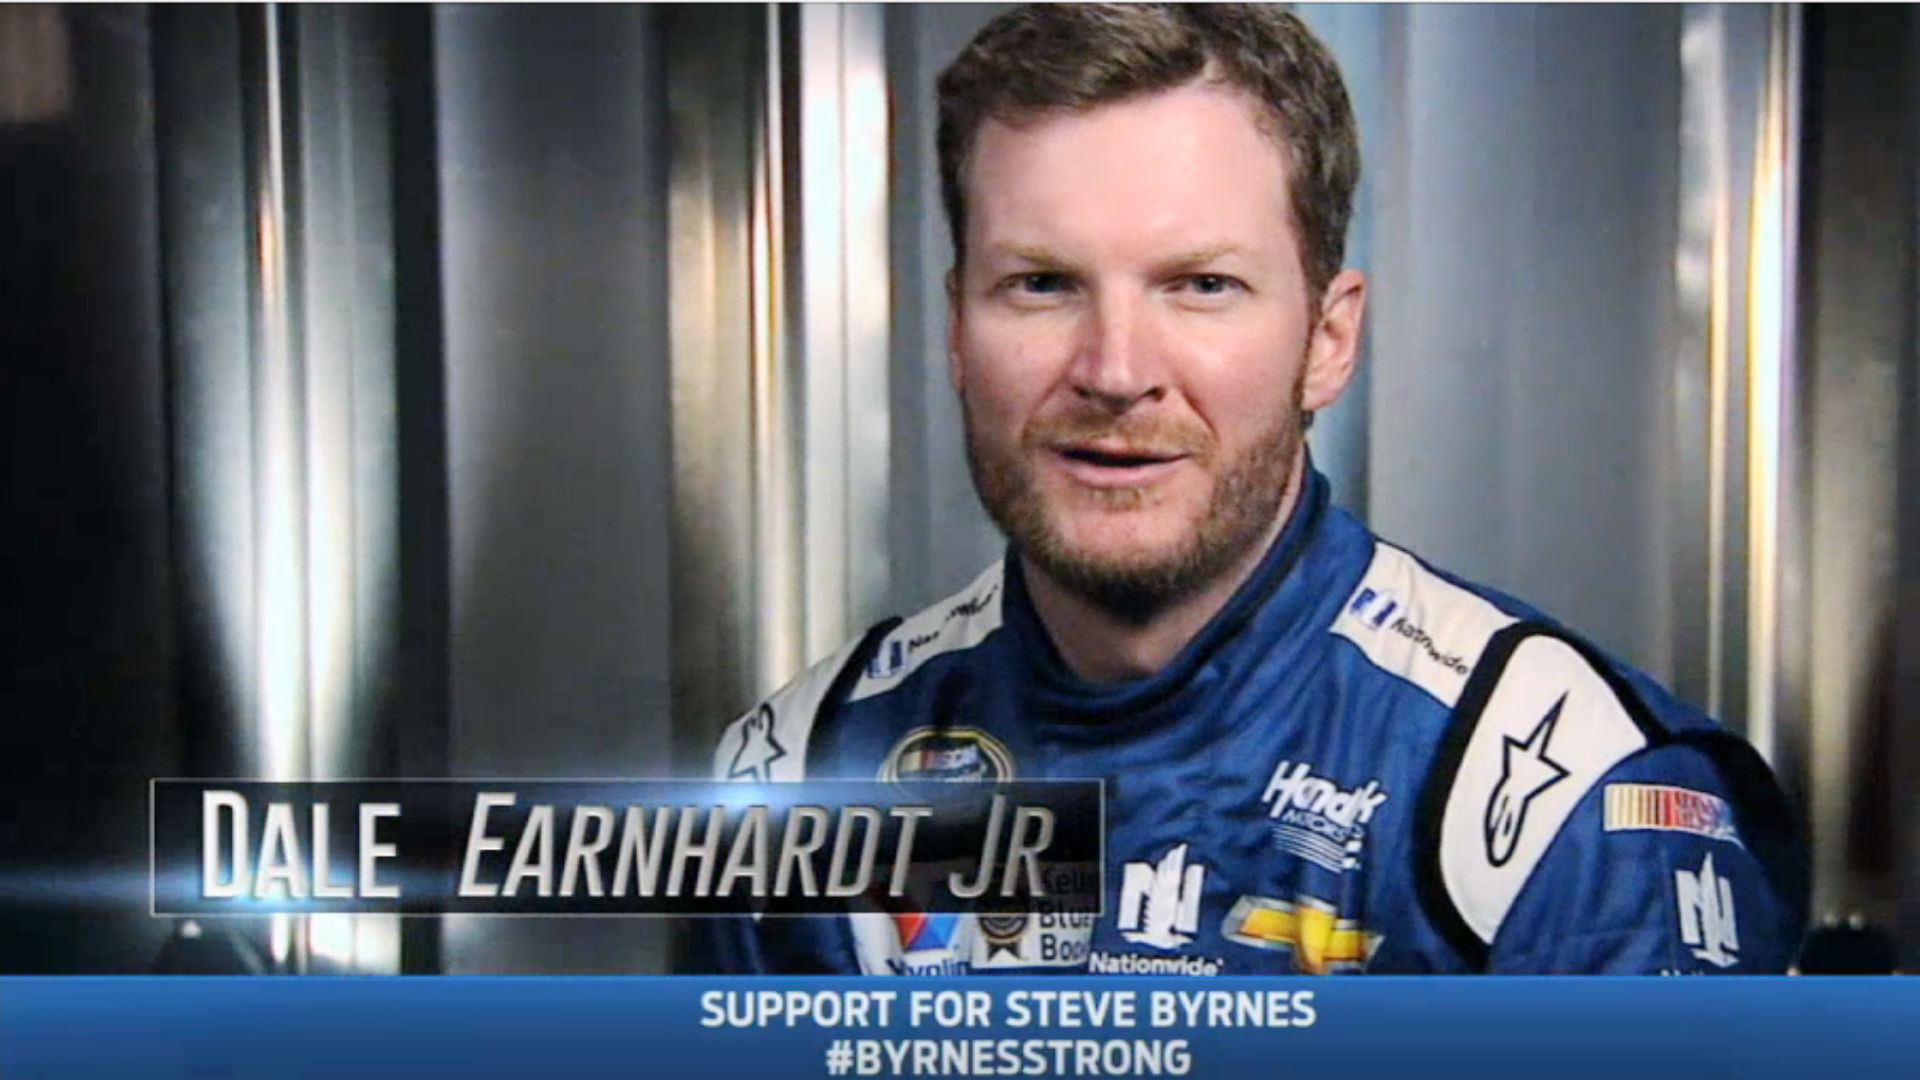 VIDEO: Drivers show support for Steve Byrnes heading into Sunday's race